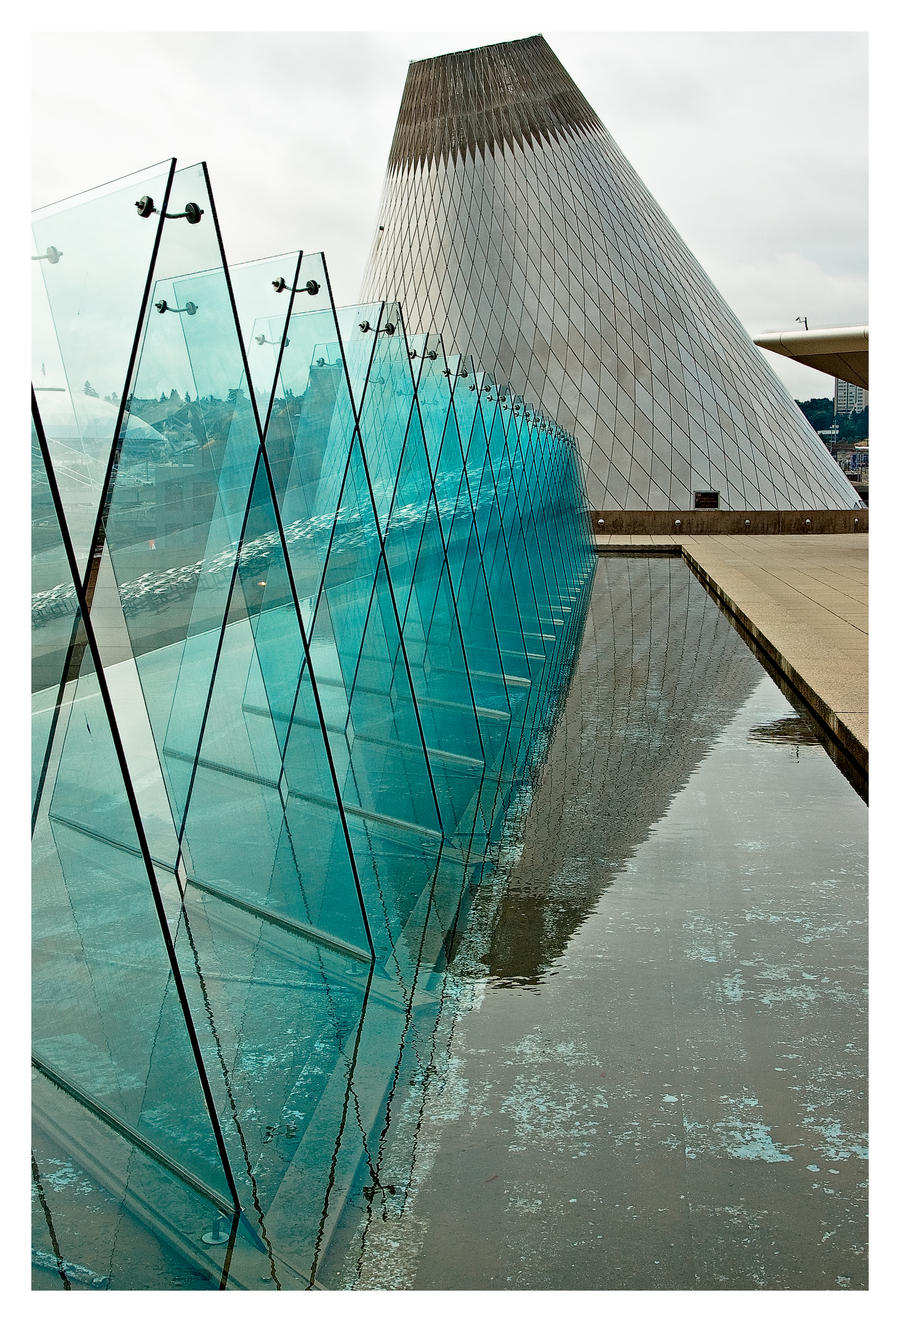 Abstract of Museum of Glass 2 by UrbanRural-Photo